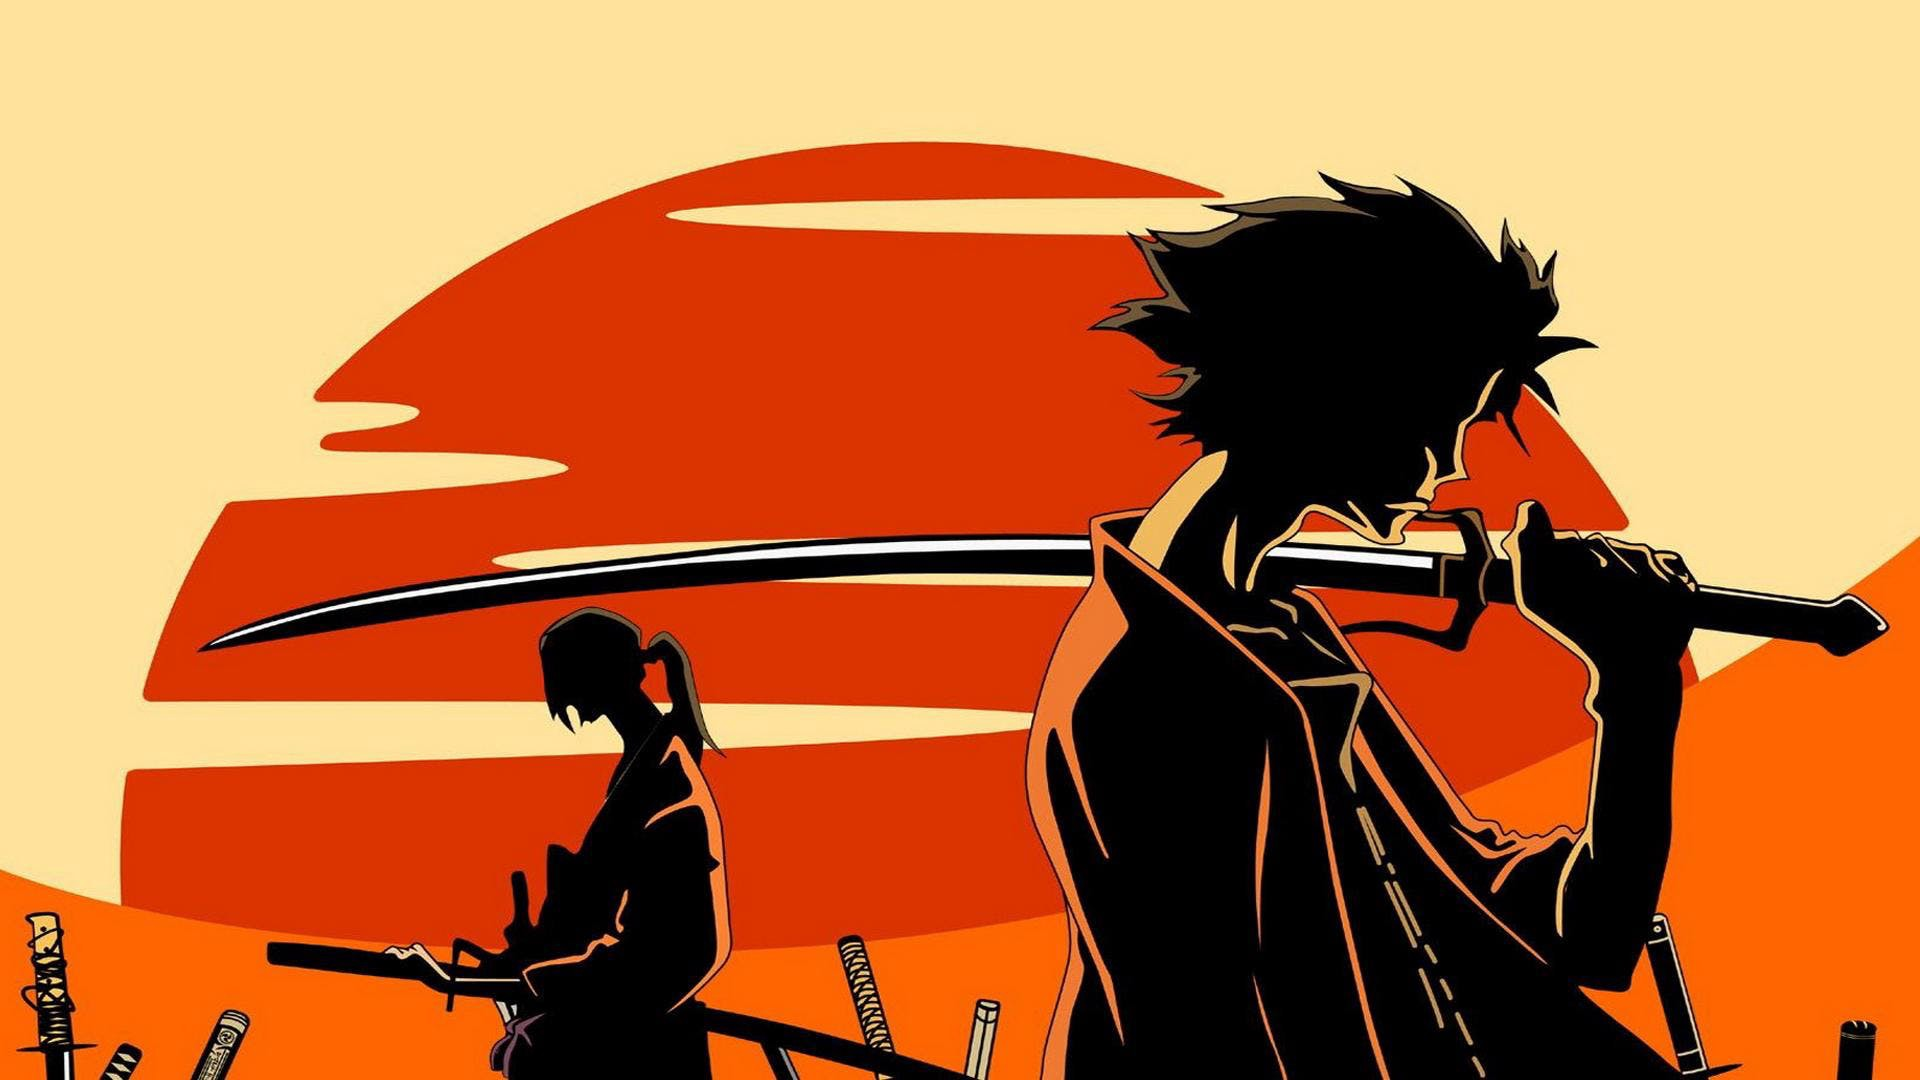 Samurai Champloo Sets A High Bar For Anime Soundtracks With Legendary Producer Nujabes By Johnnie Yu Text Color Medium